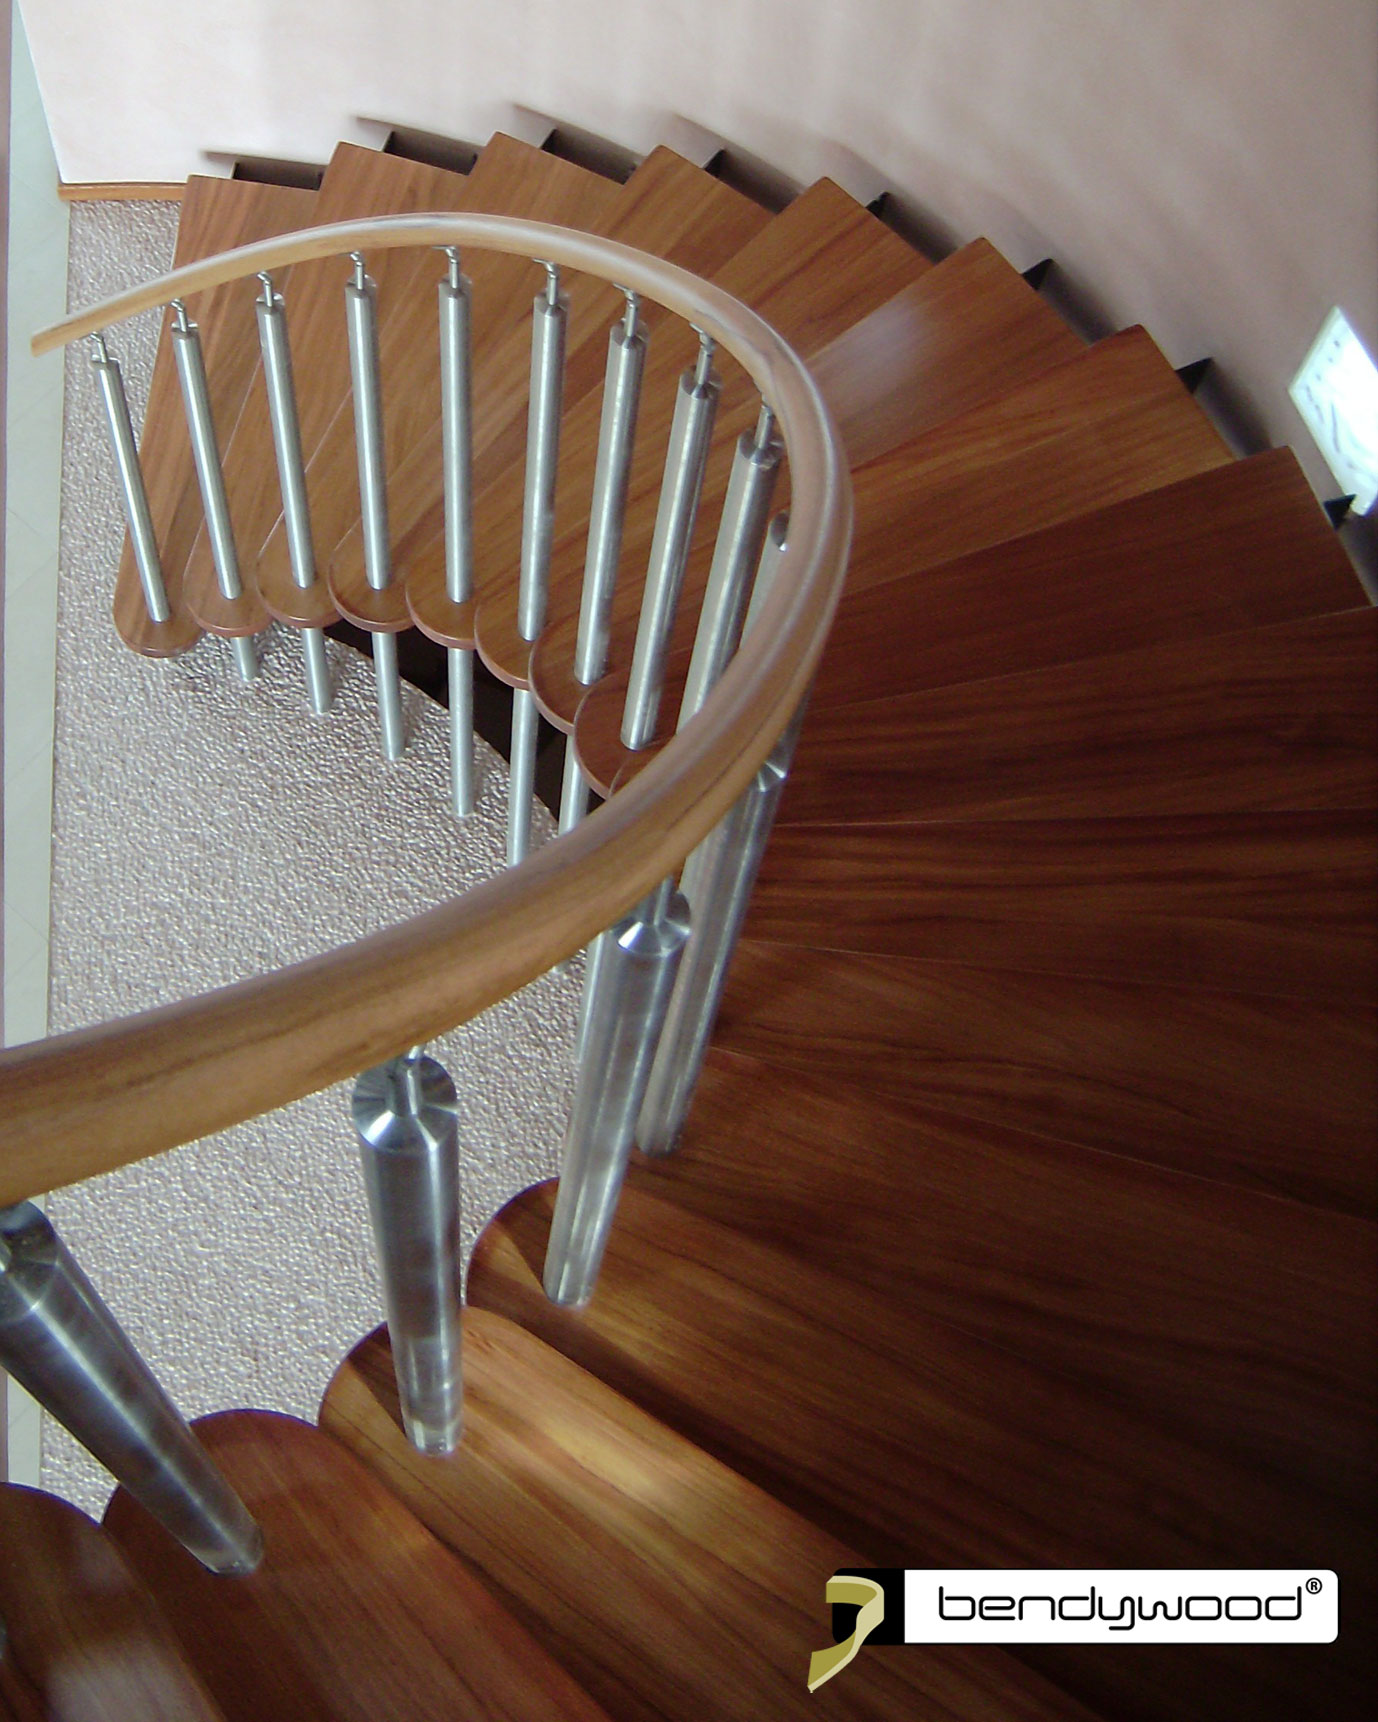 Round bending handrail in Bendywood®-doussié for curved staircase.